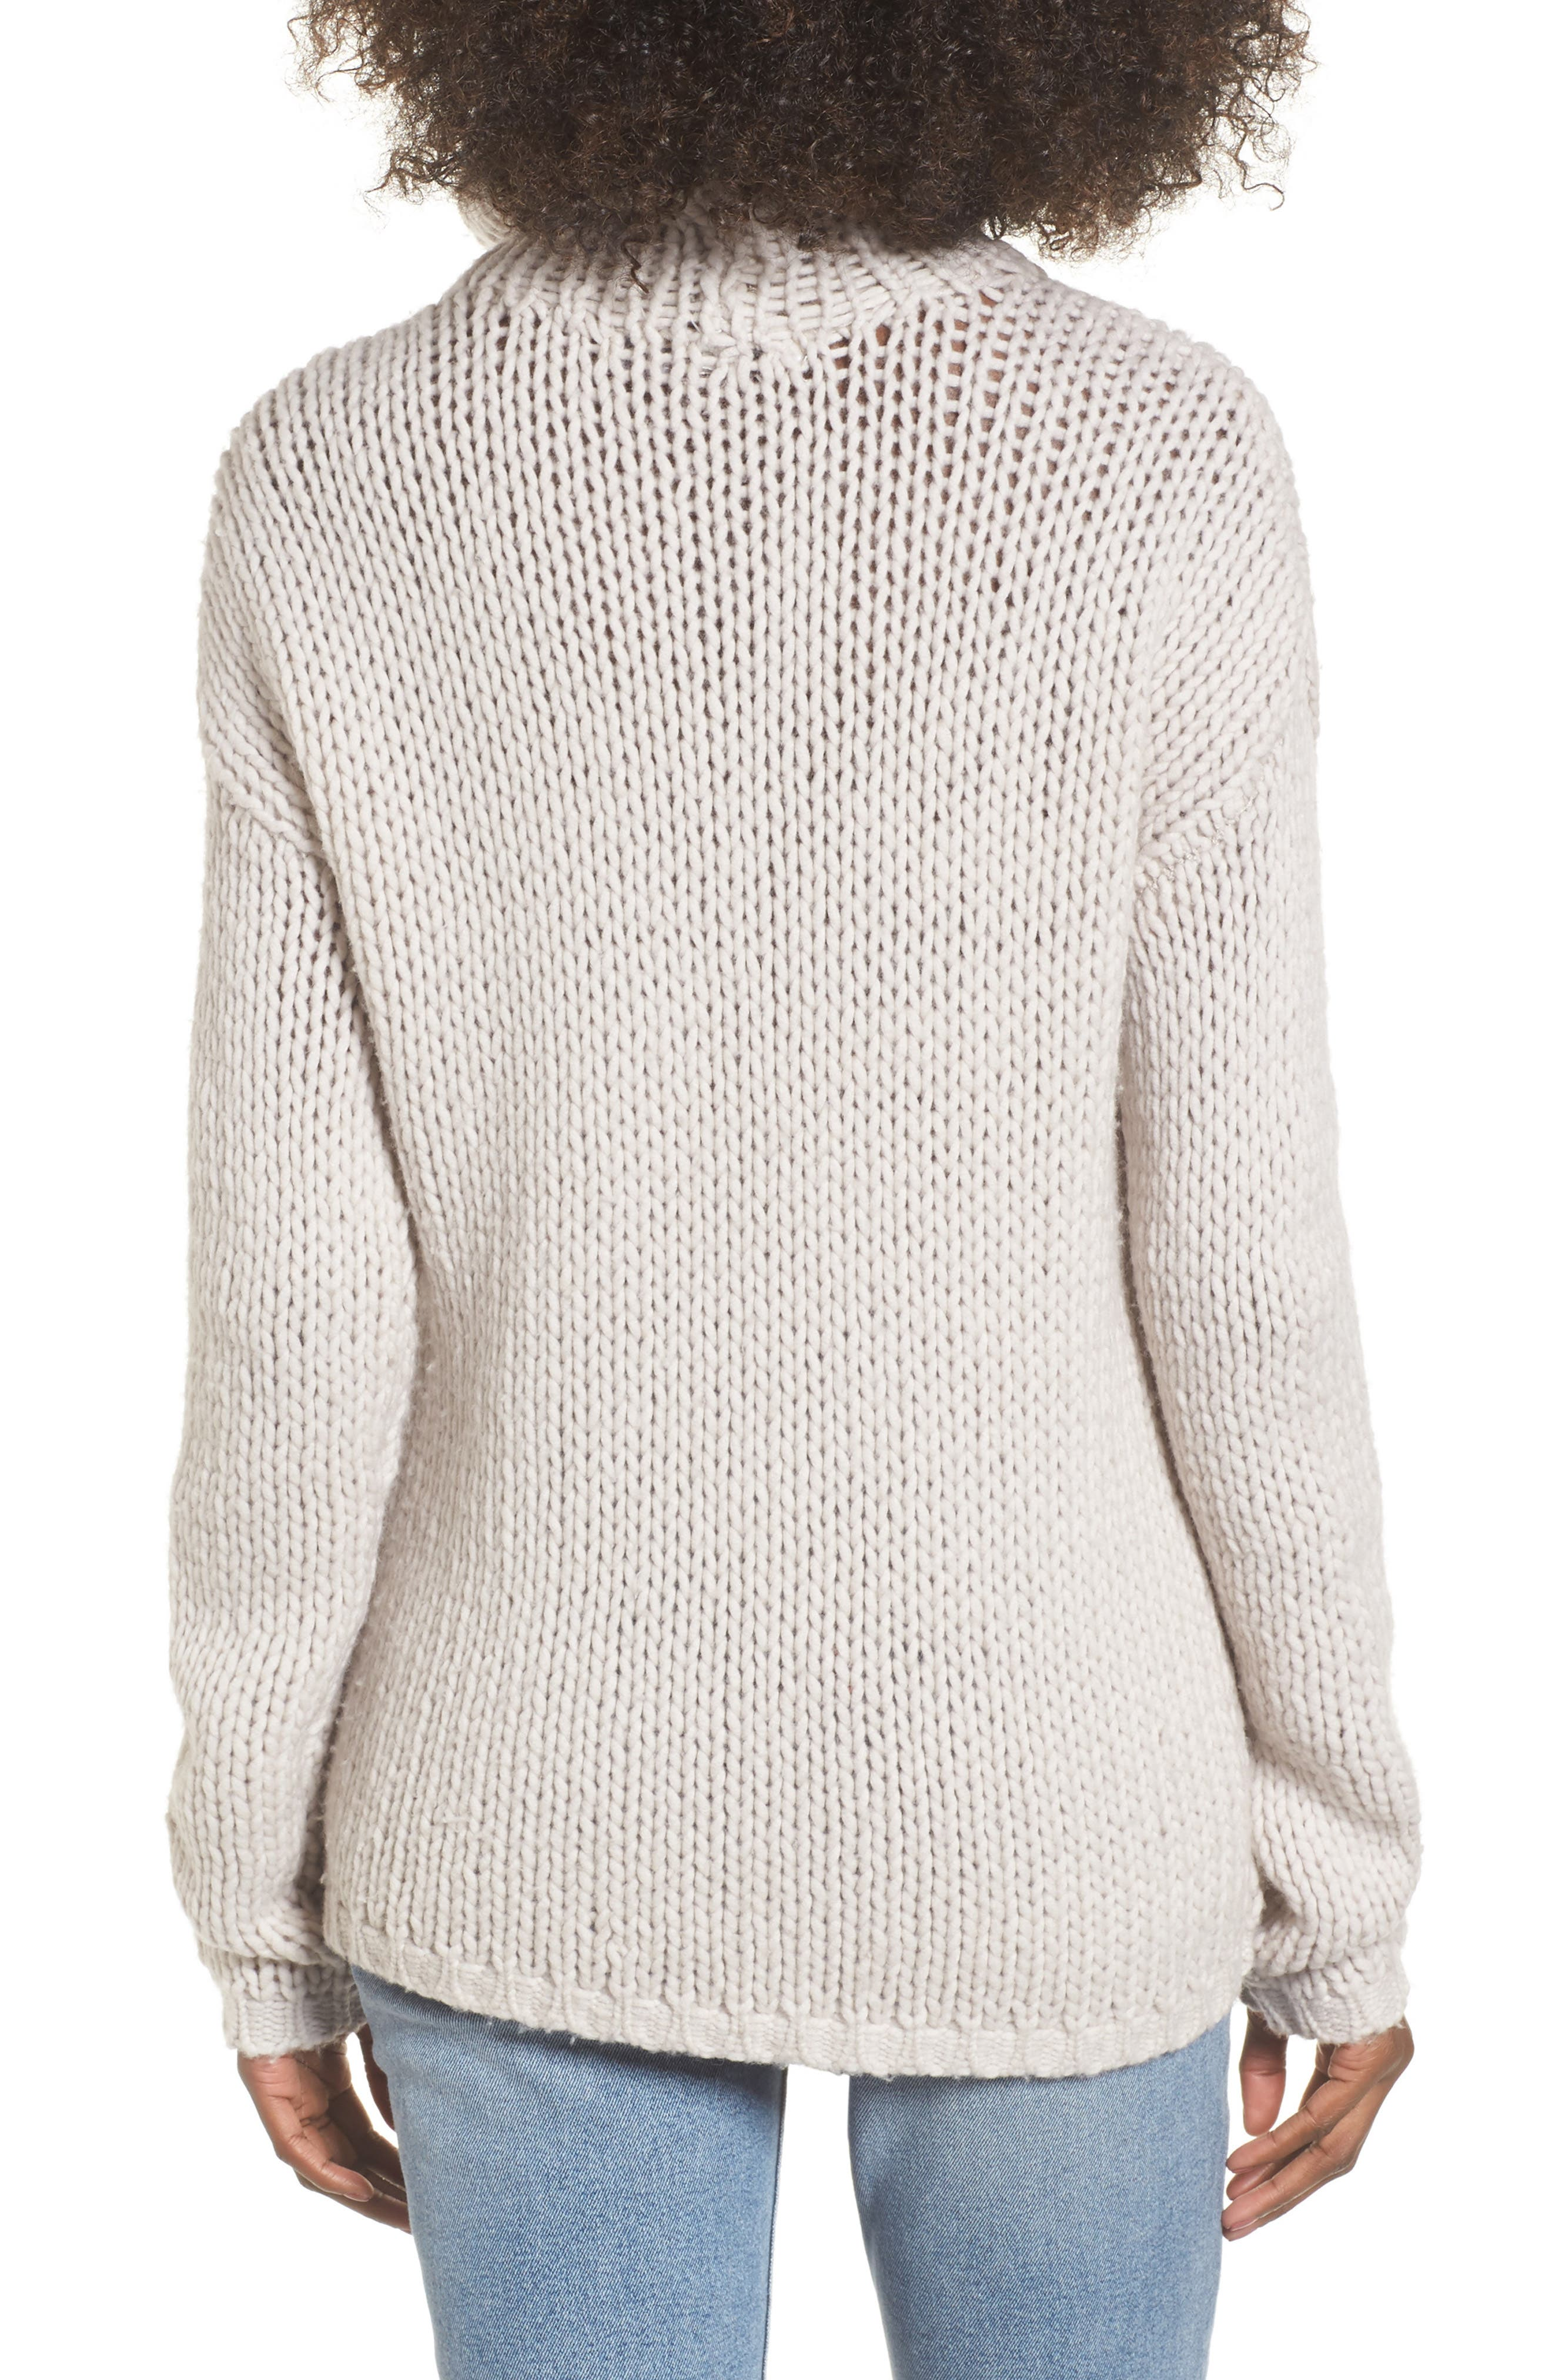 Hawken Turtleneck Sweater,                             Alternate thumbnail 2, color,                             Pearl